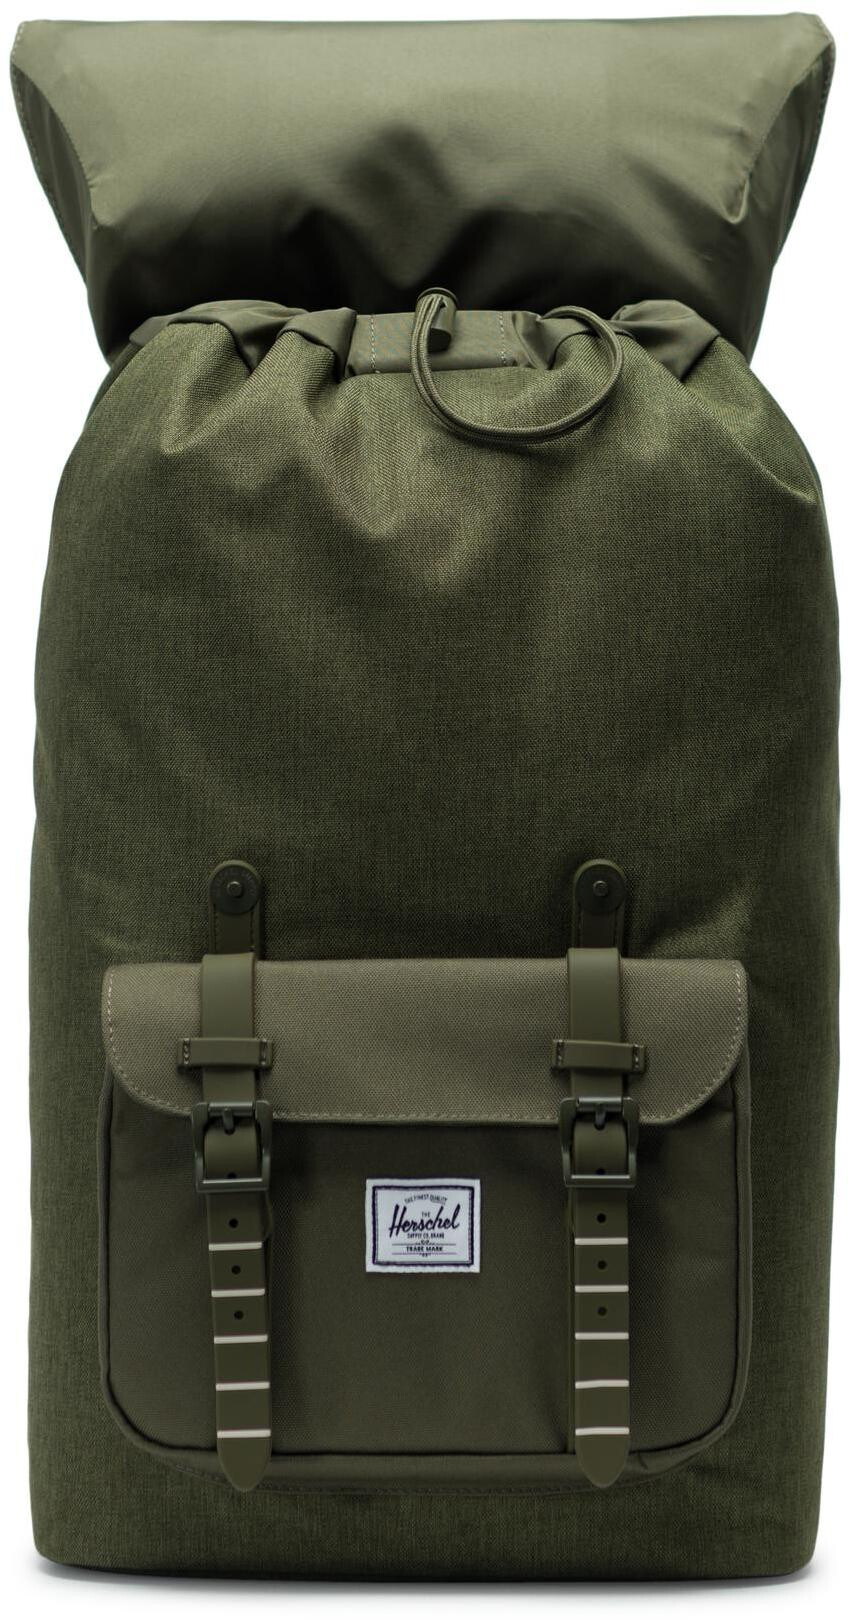 ed1a37f8e9080 Herschel Little America Backpack Unisex olive night crosshatch olive night